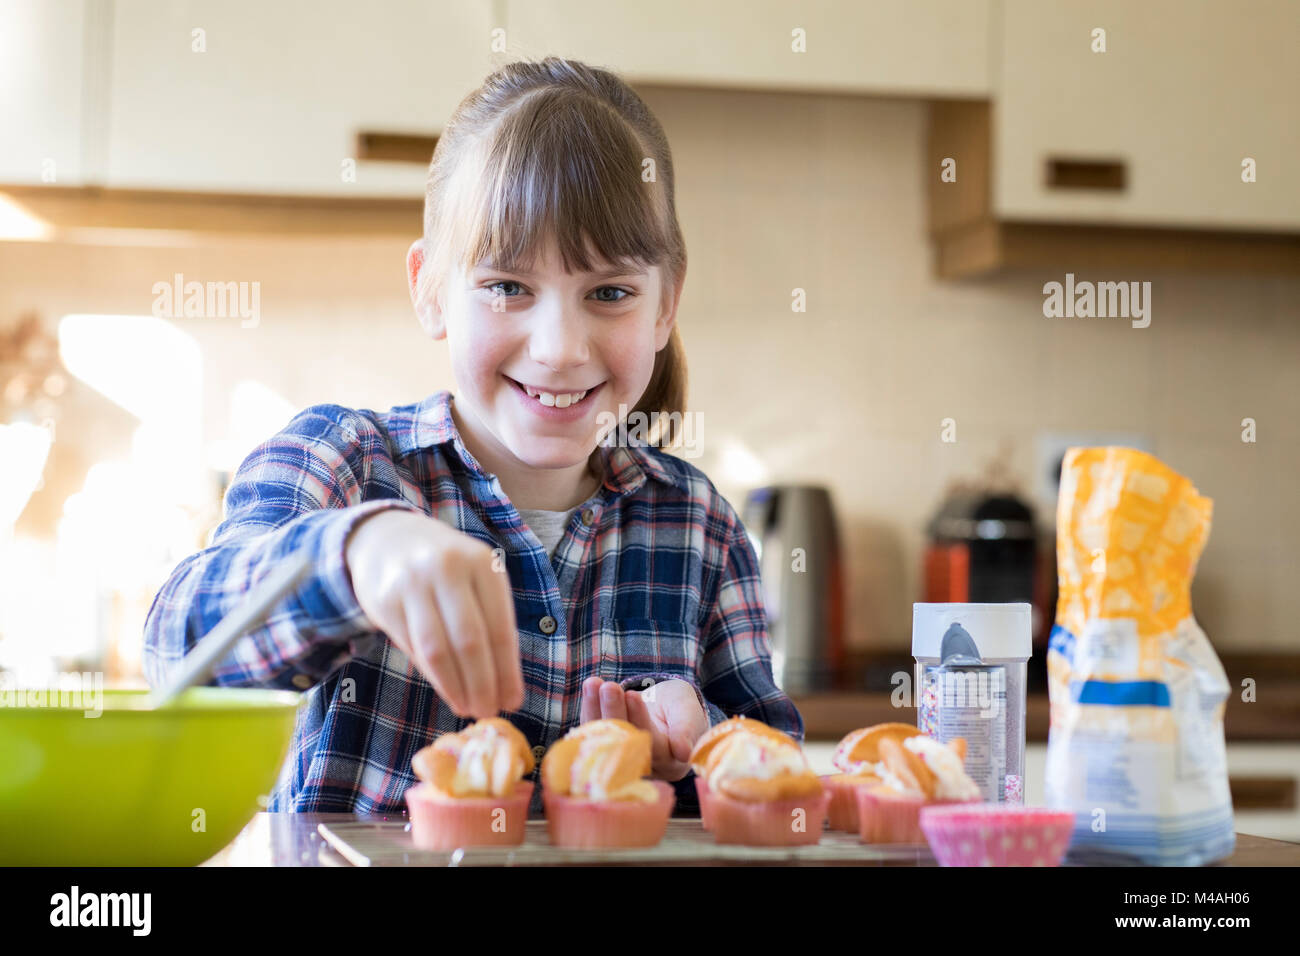 Portrait Of Girl In Kitchen Decorating Home Made Cupcakes - Stock Image